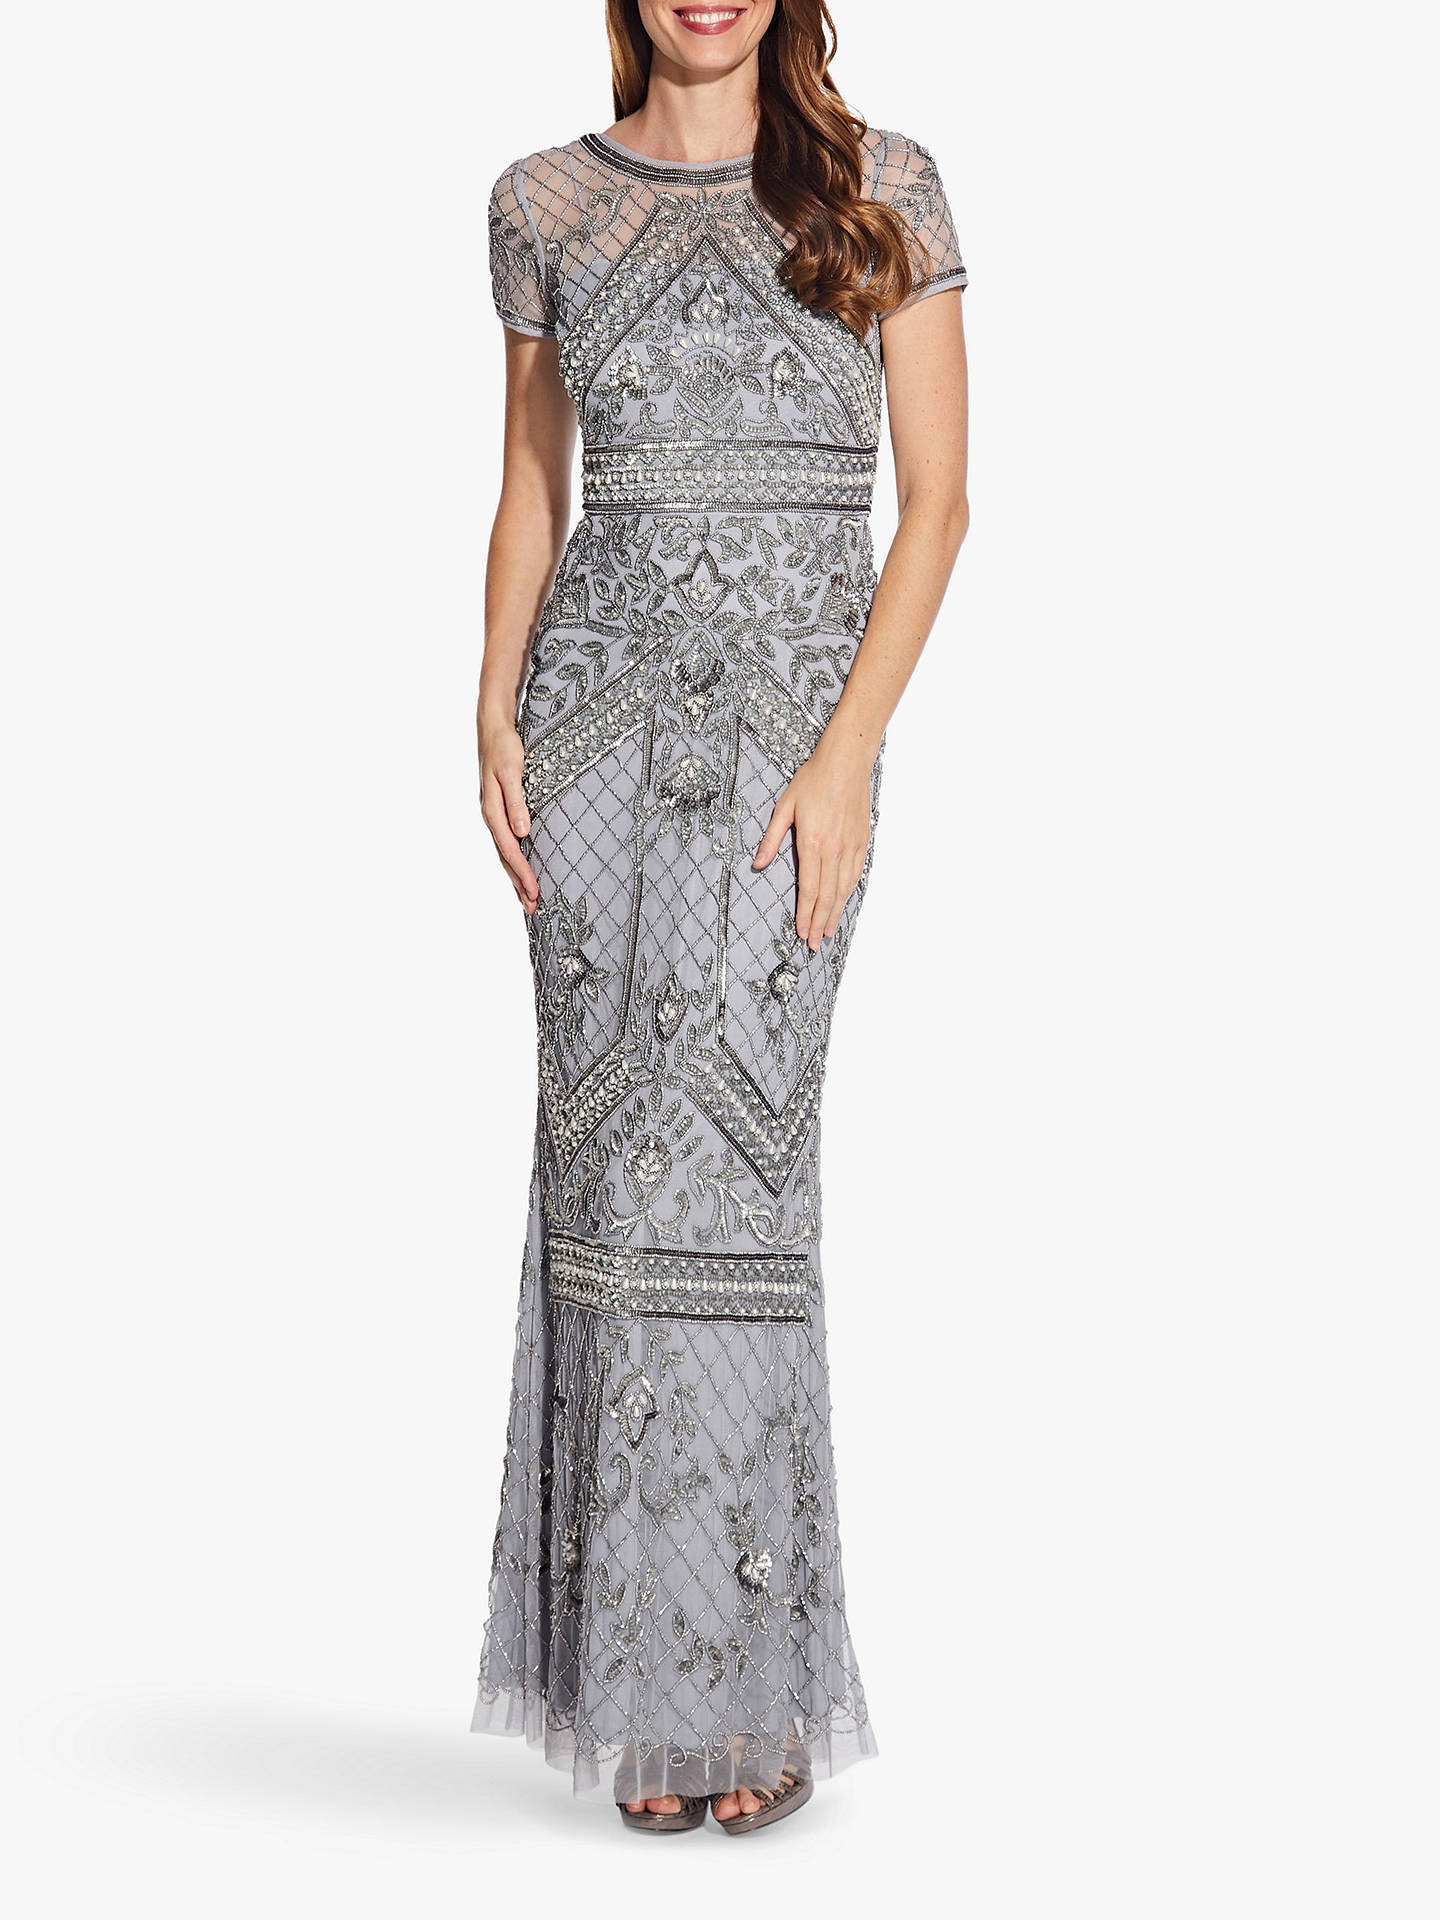 Adrianna Papell Sequin Evening Dress With Beaded Waist Detail Silver Mist At John Lewis Partners